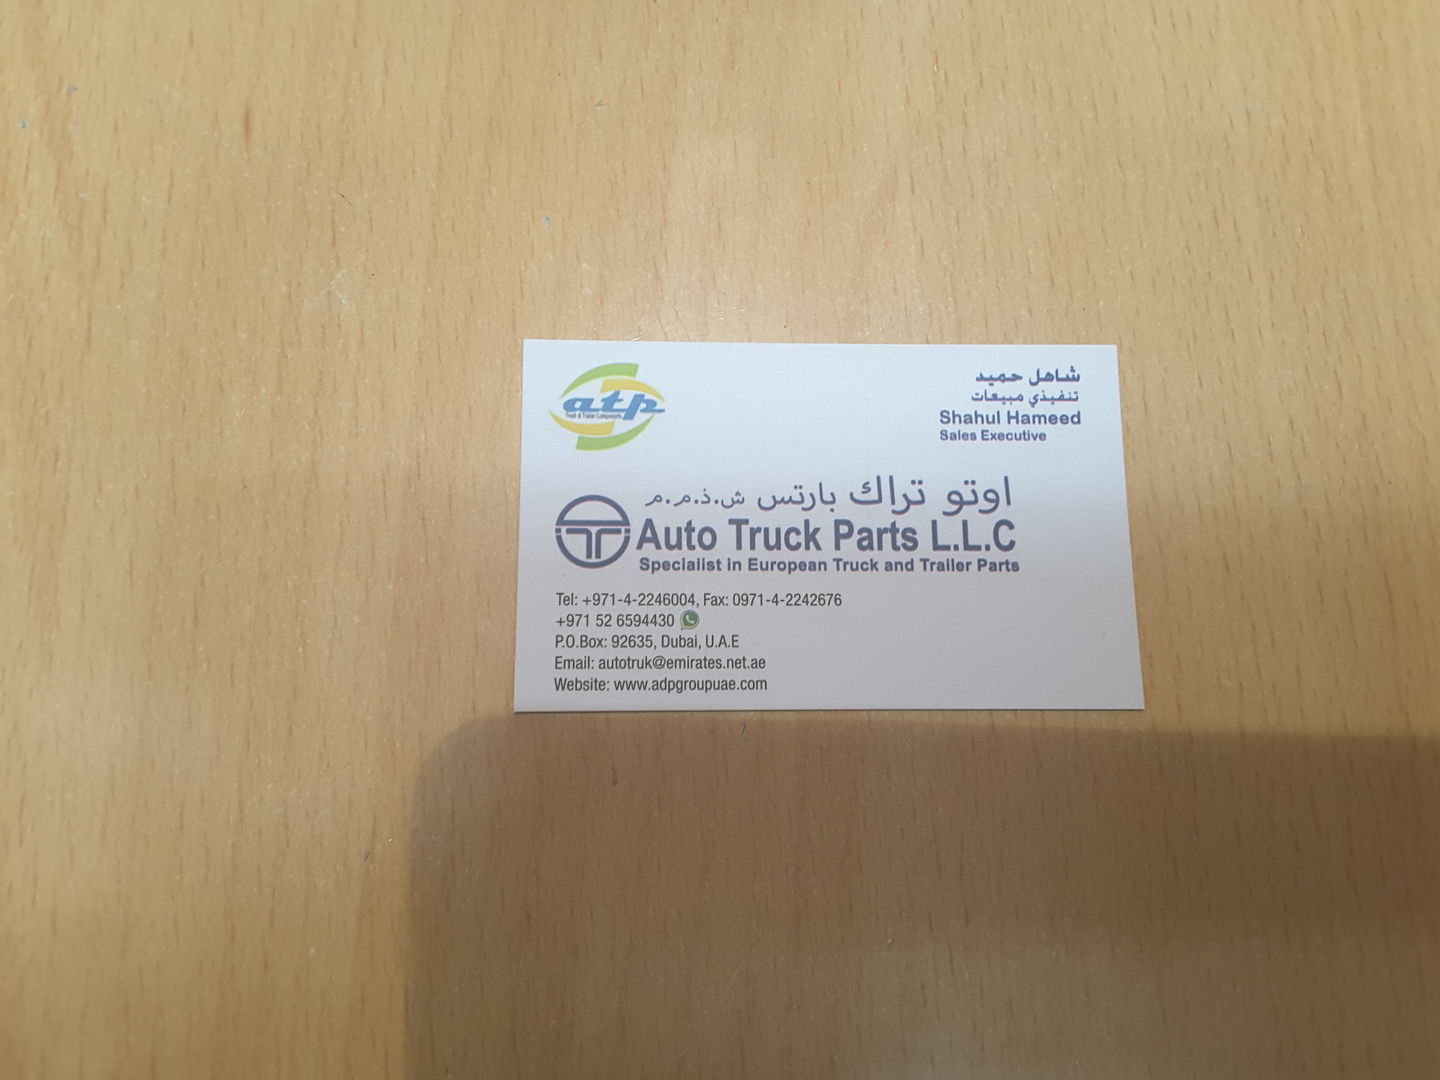 Walif-business-auto-truck-parts-1